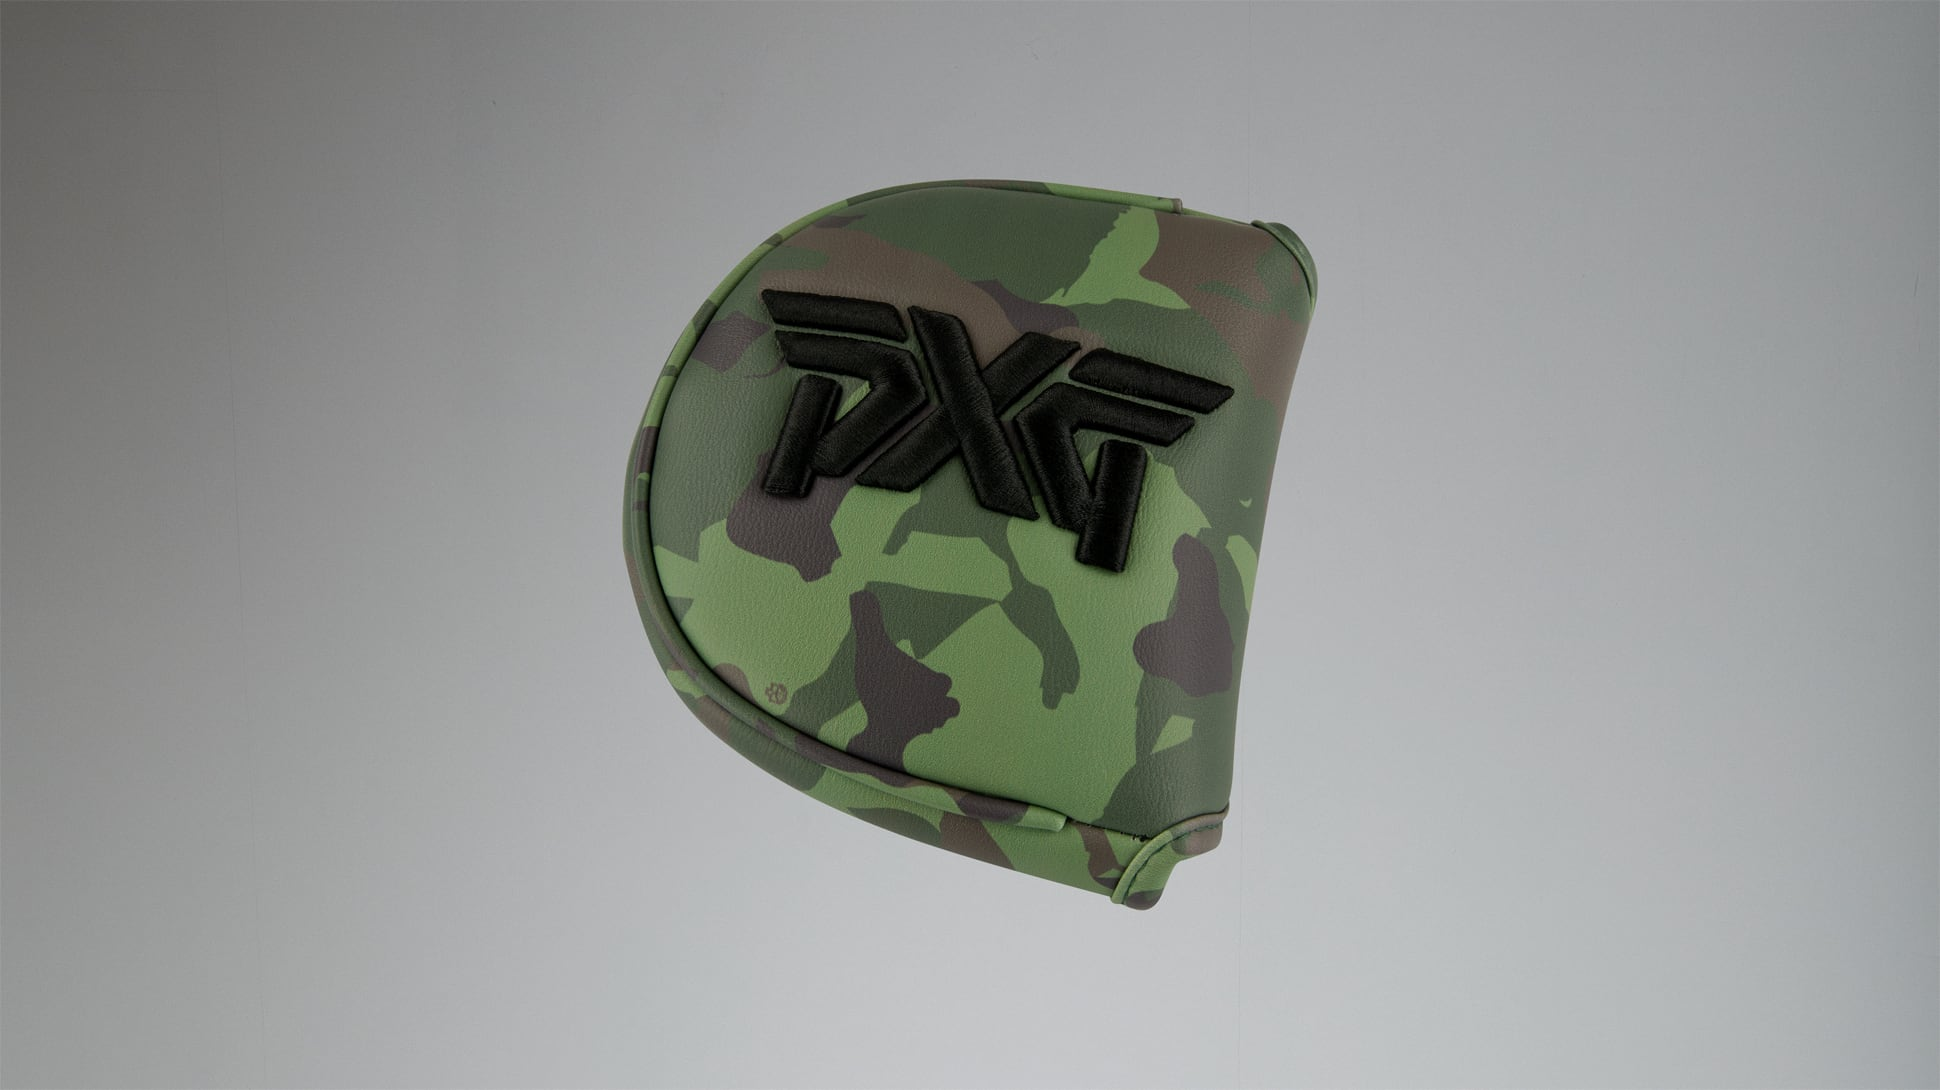 Jungle Camo Mallet Putter Headcover Image 1